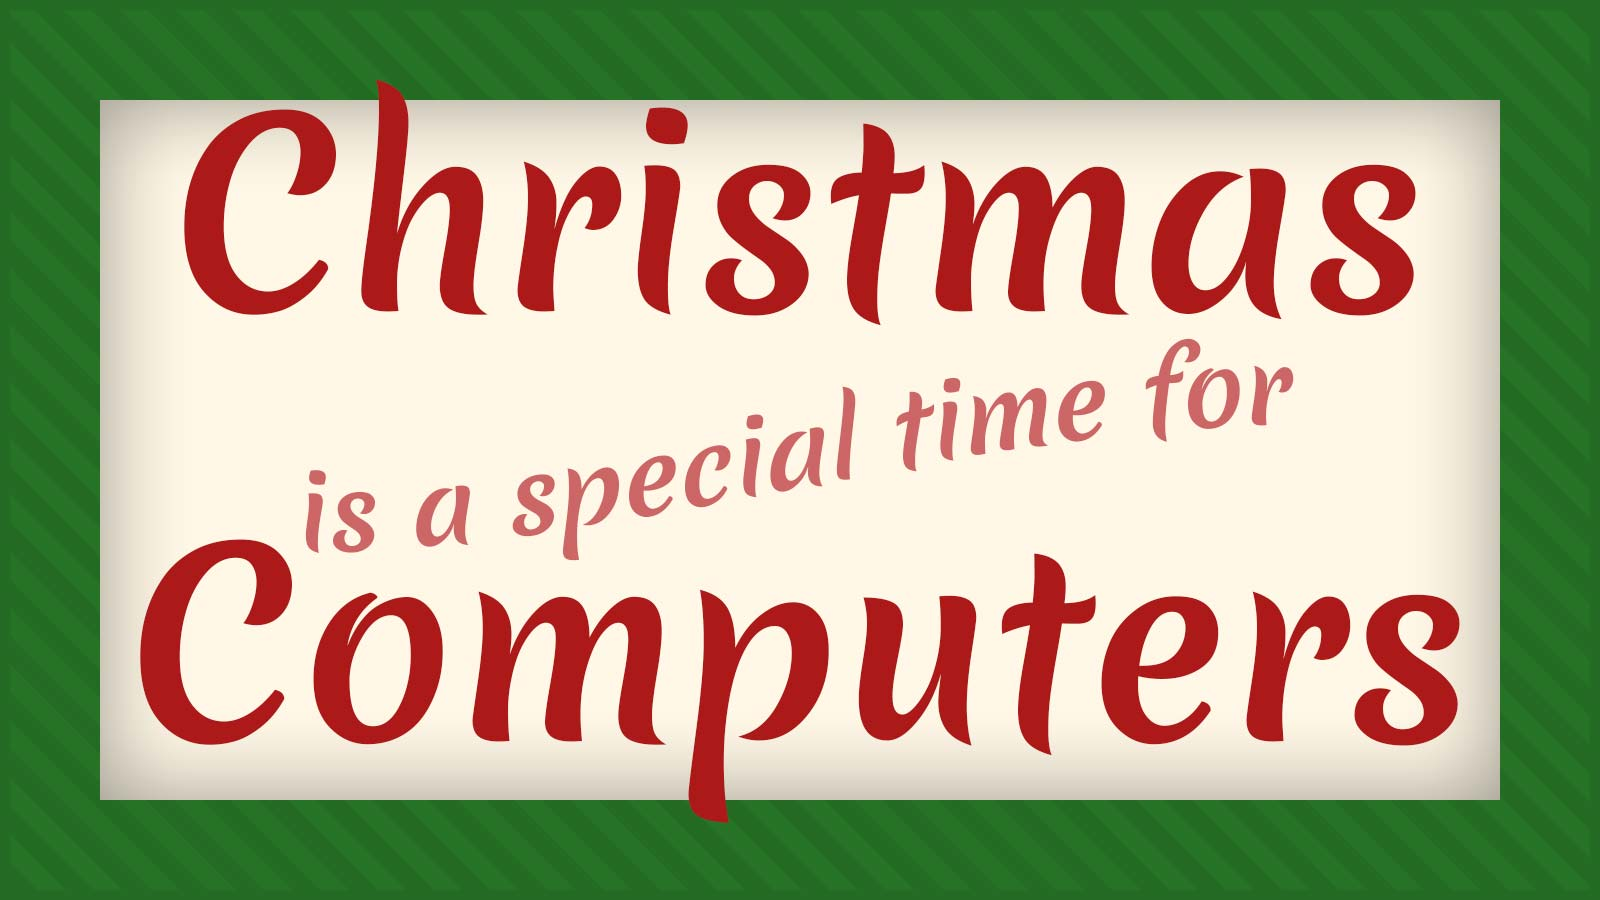 Christmas is a special time for computers